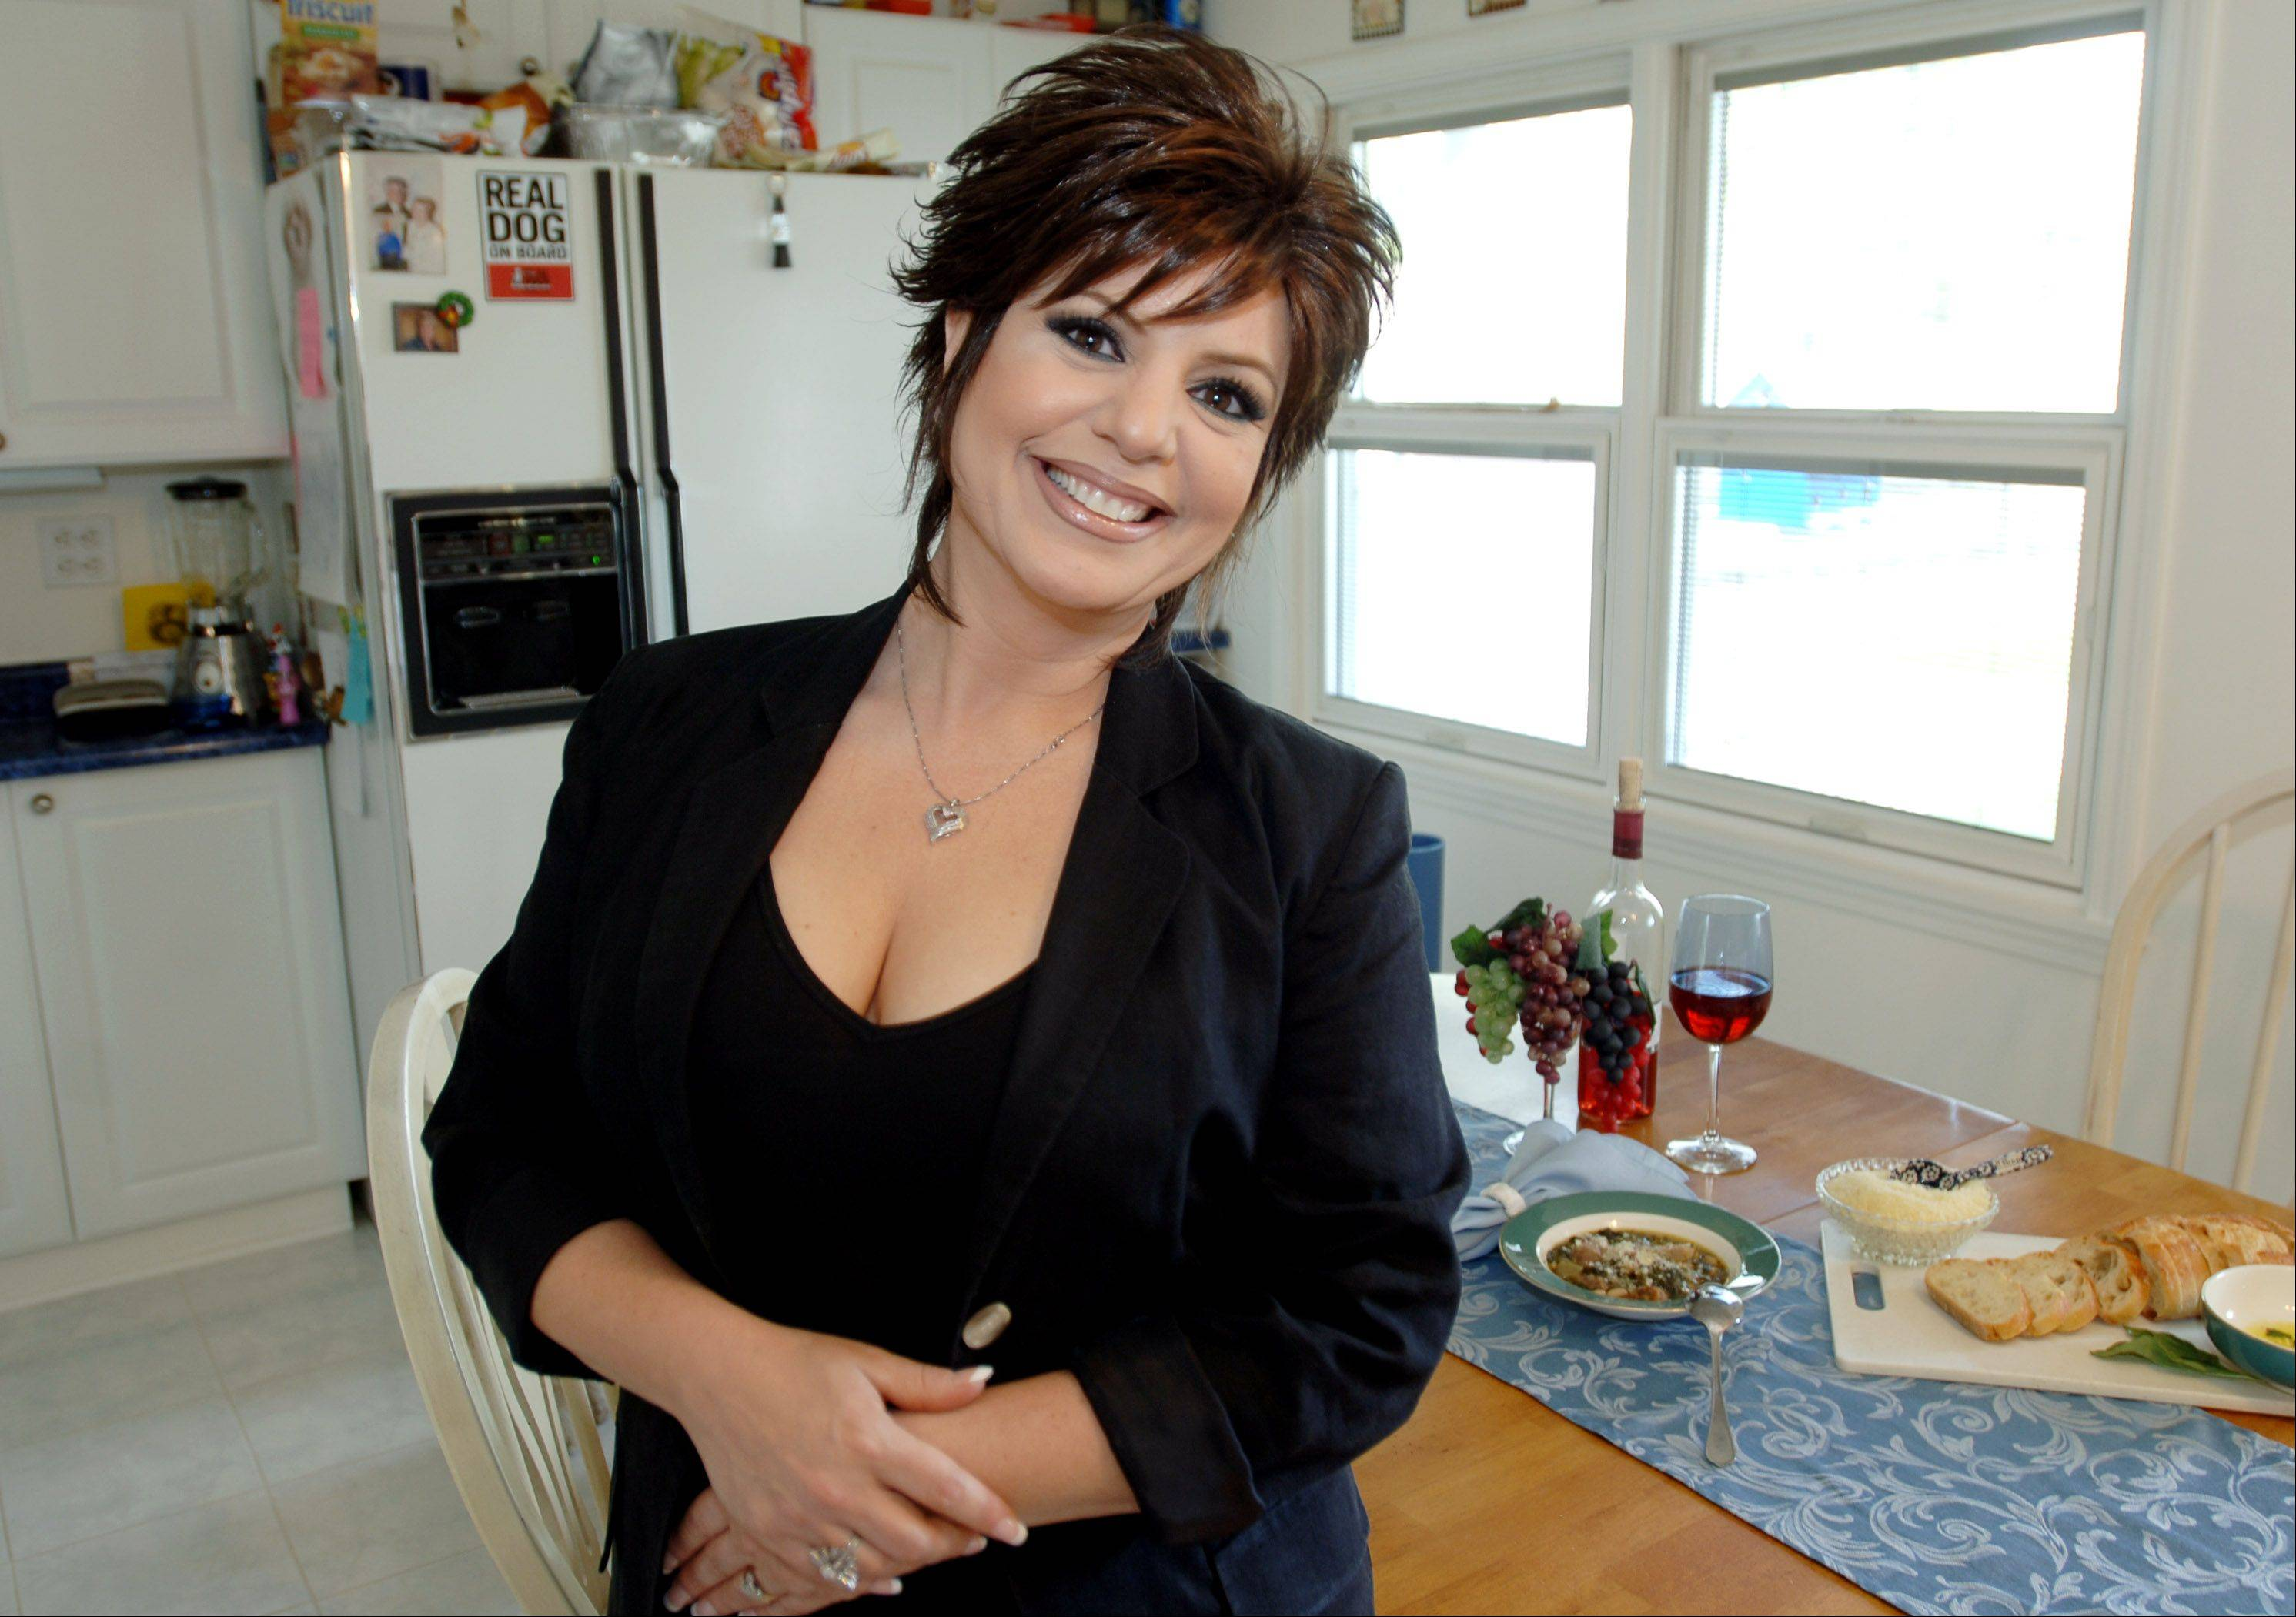 Wauconda woman savors family memories, recipes